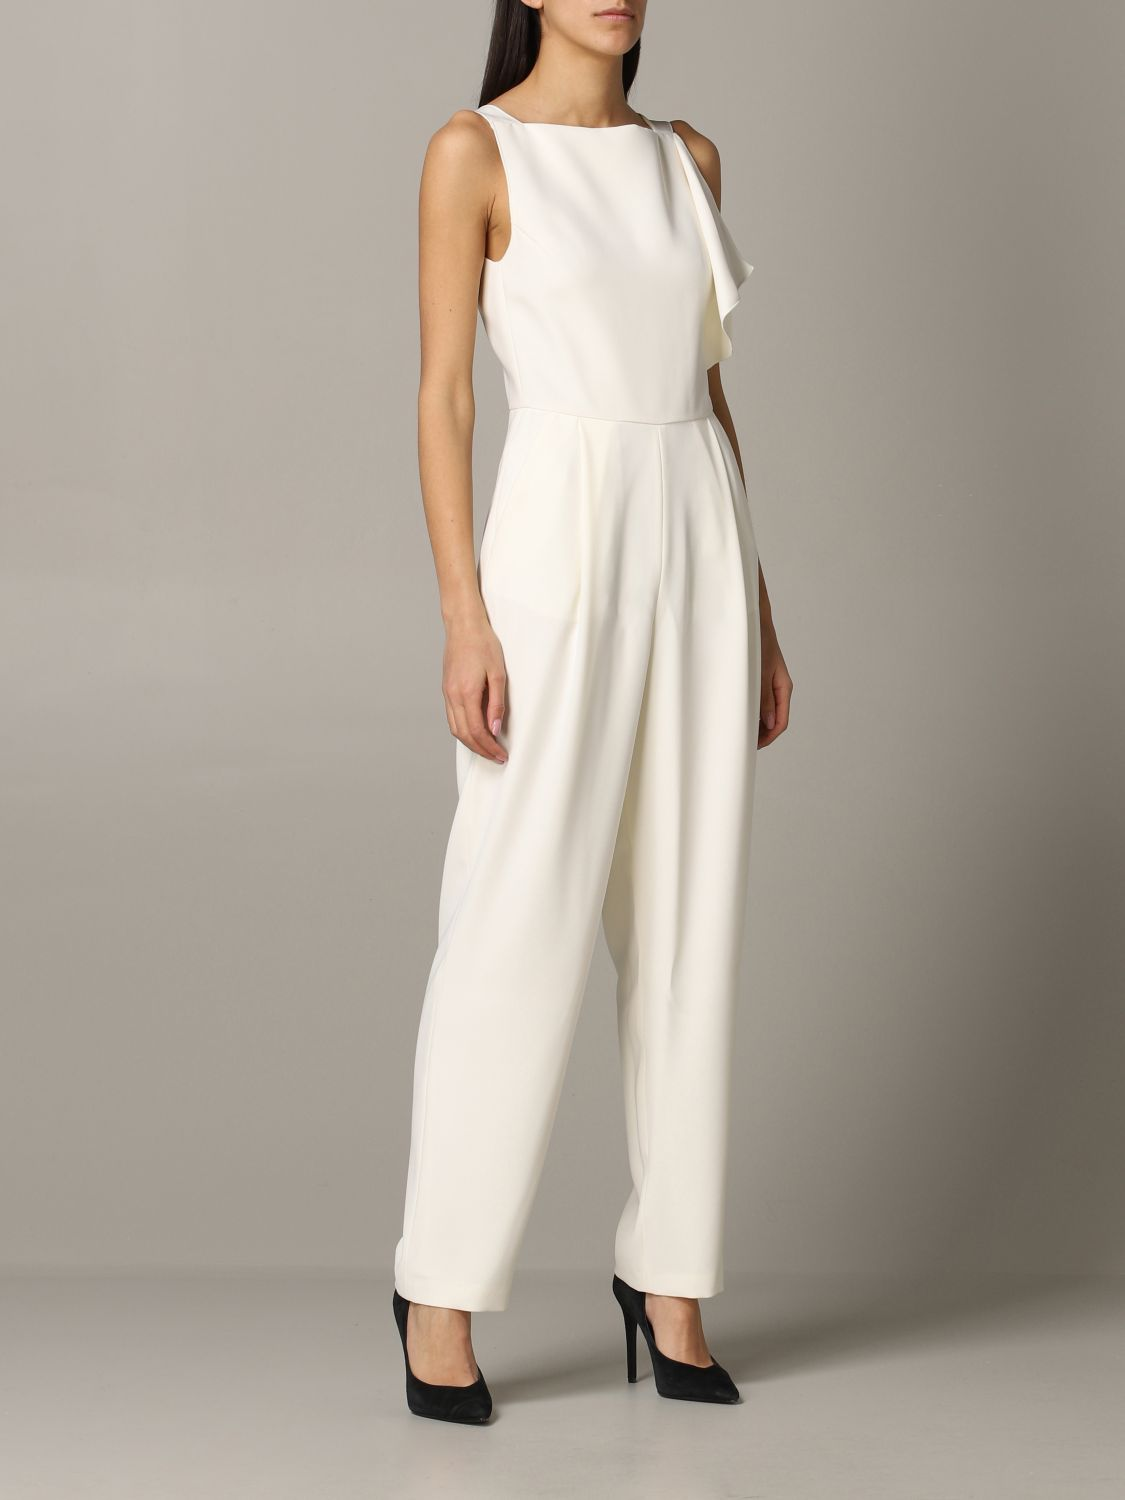 Emporio Armani suit in cady and satin white 1